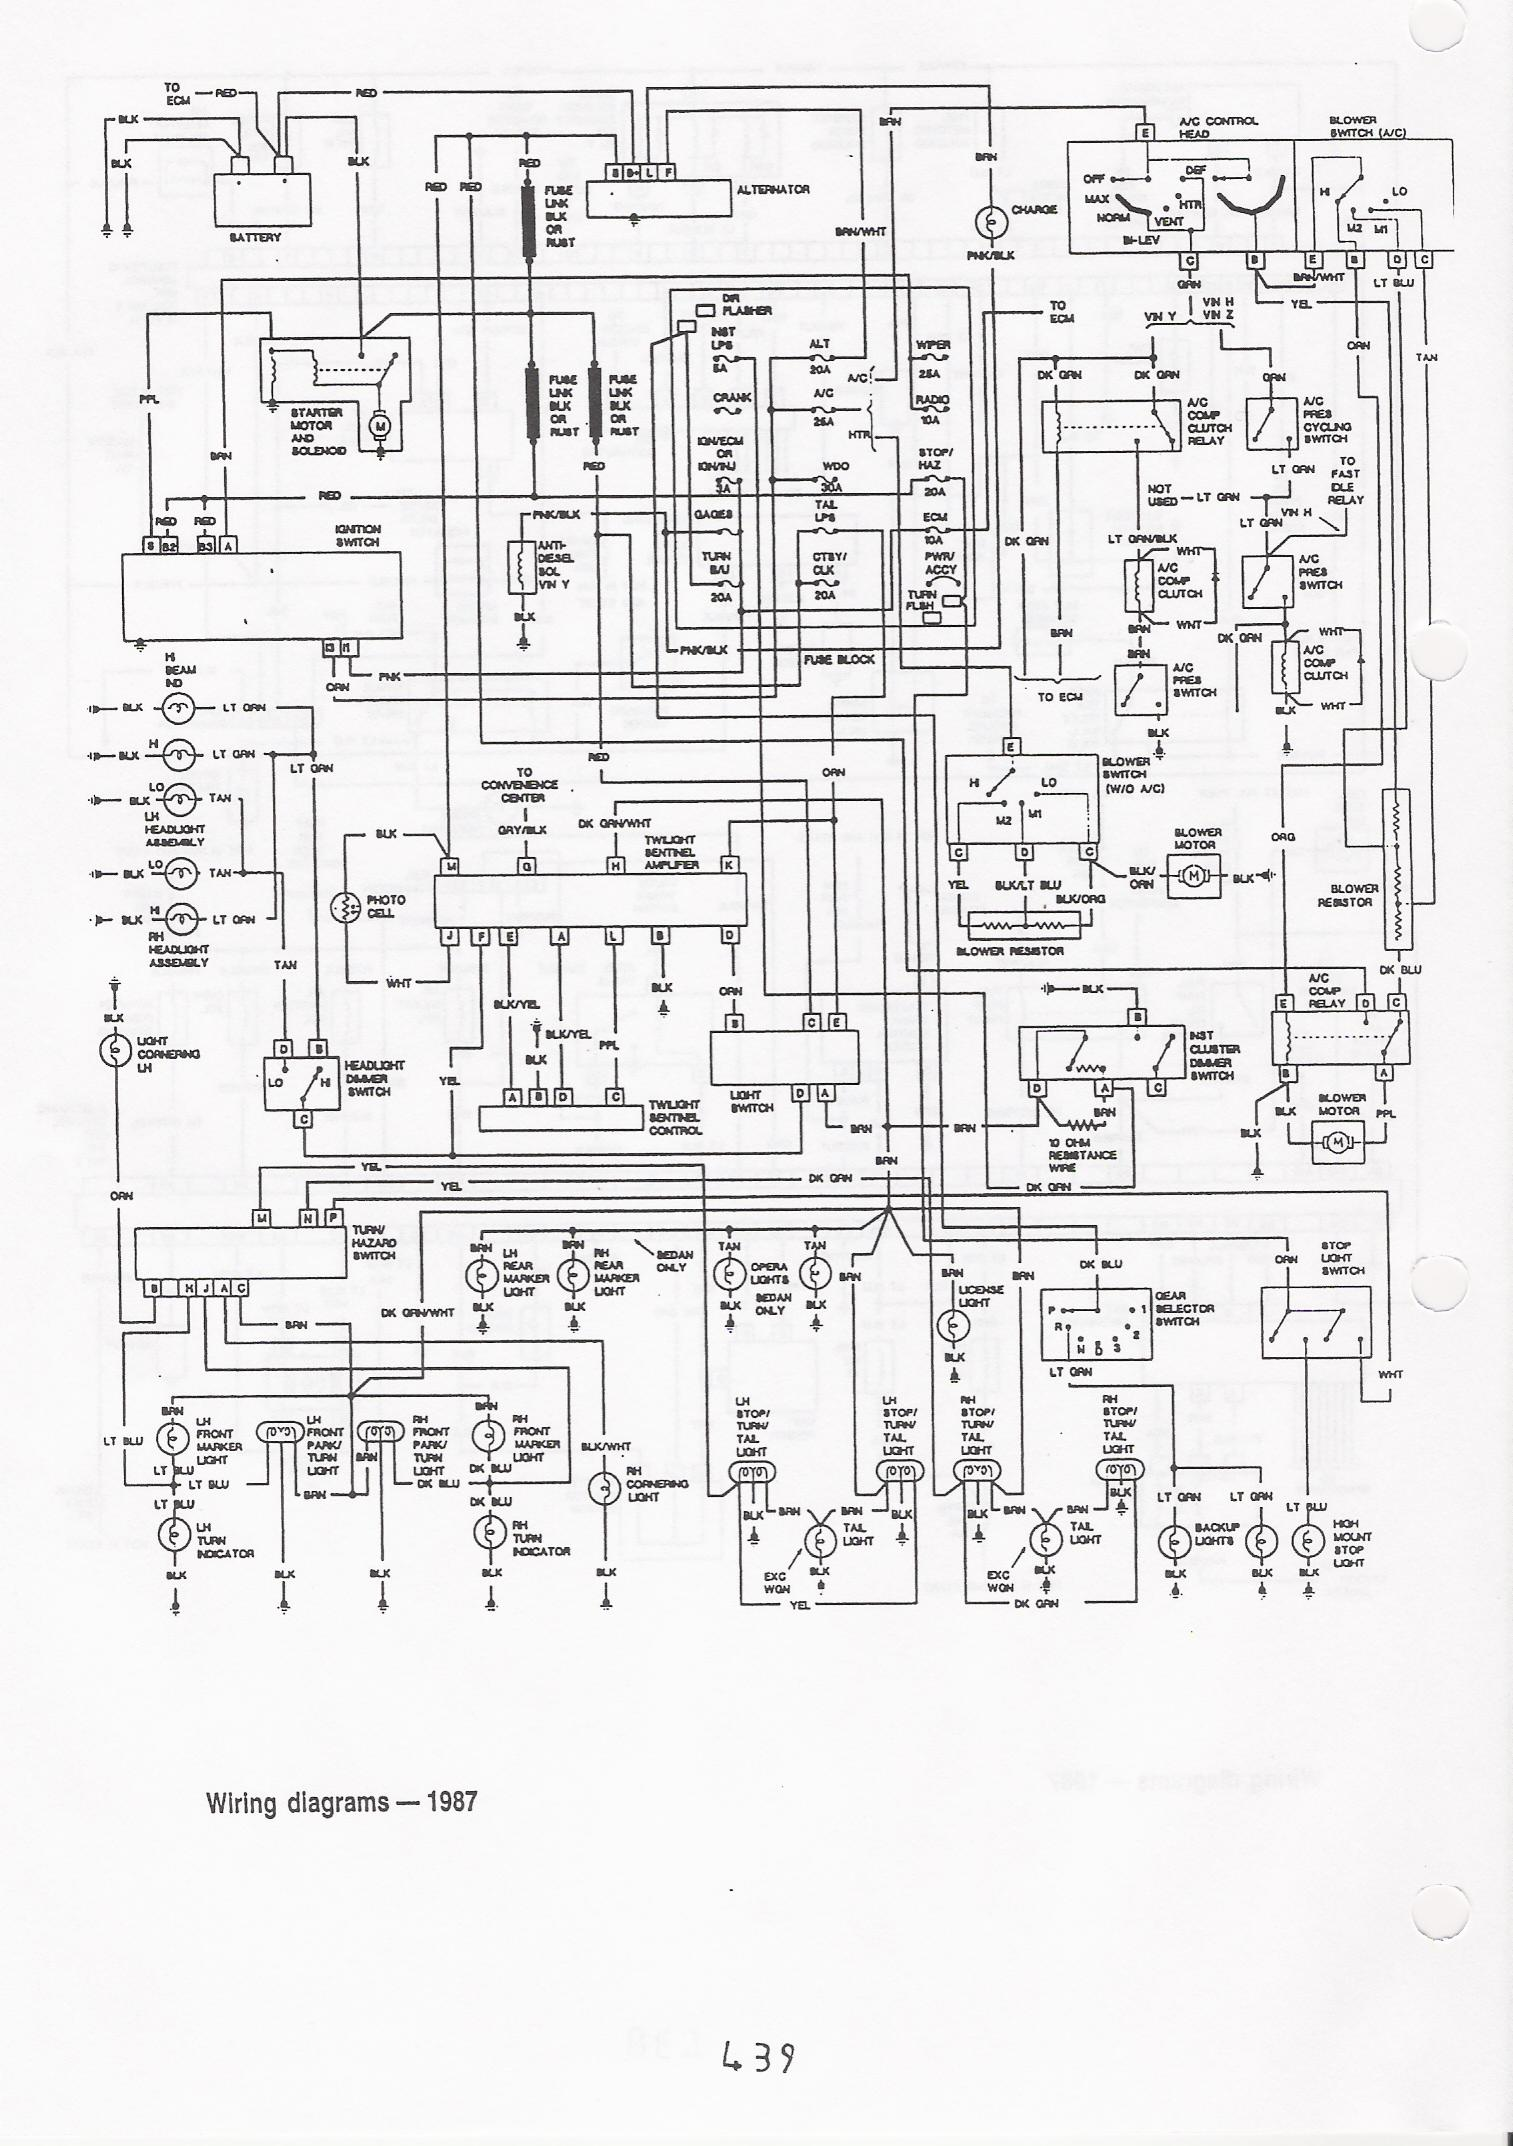 [DOC] Diagram 1987 Jeepanche Wiring Diagram Ebook